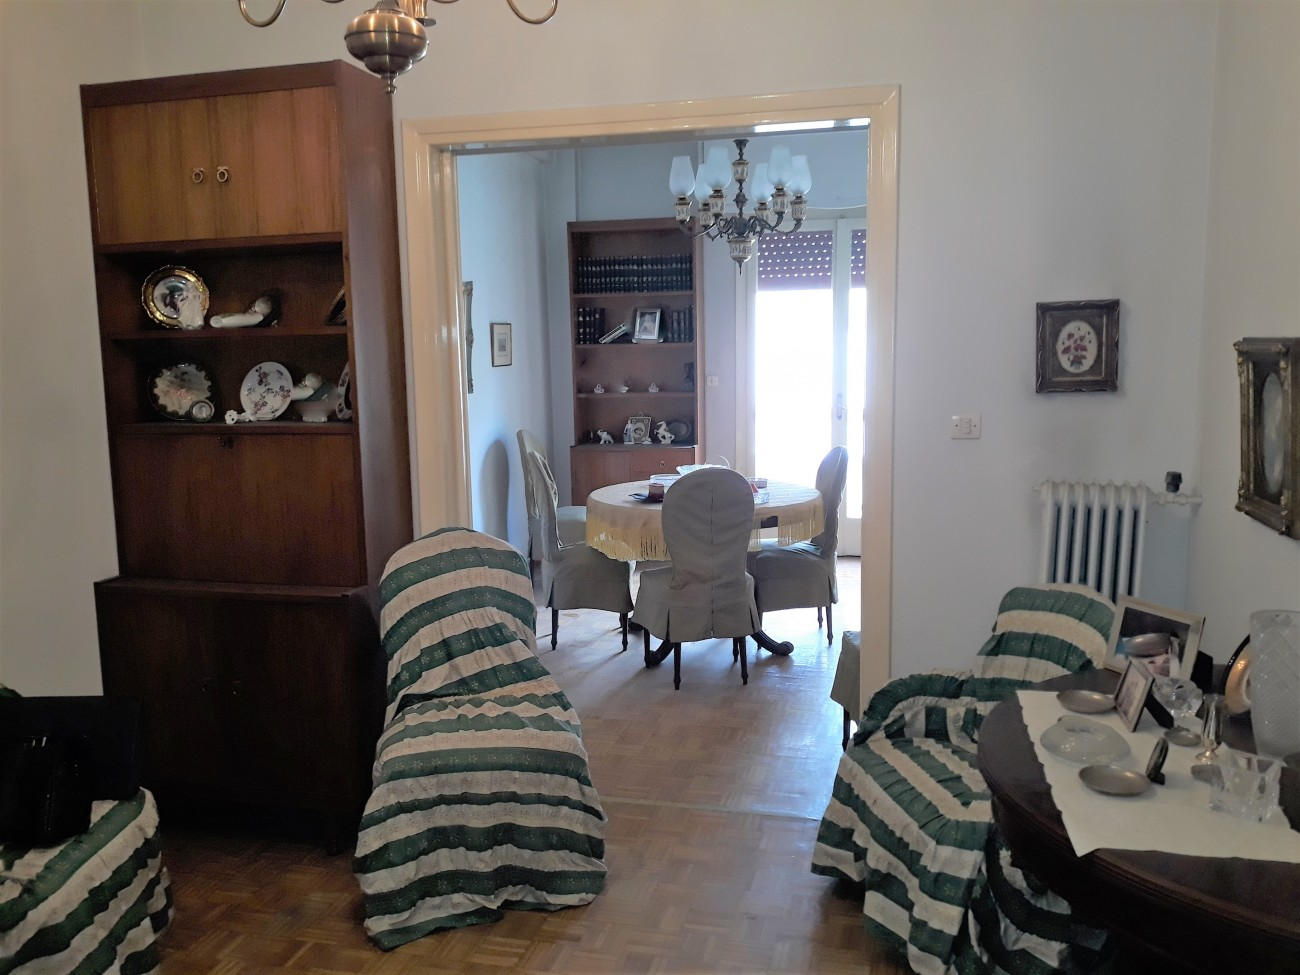 Apartment for Sale in Koukaki- Makrygianni, Athens City Center, Greece